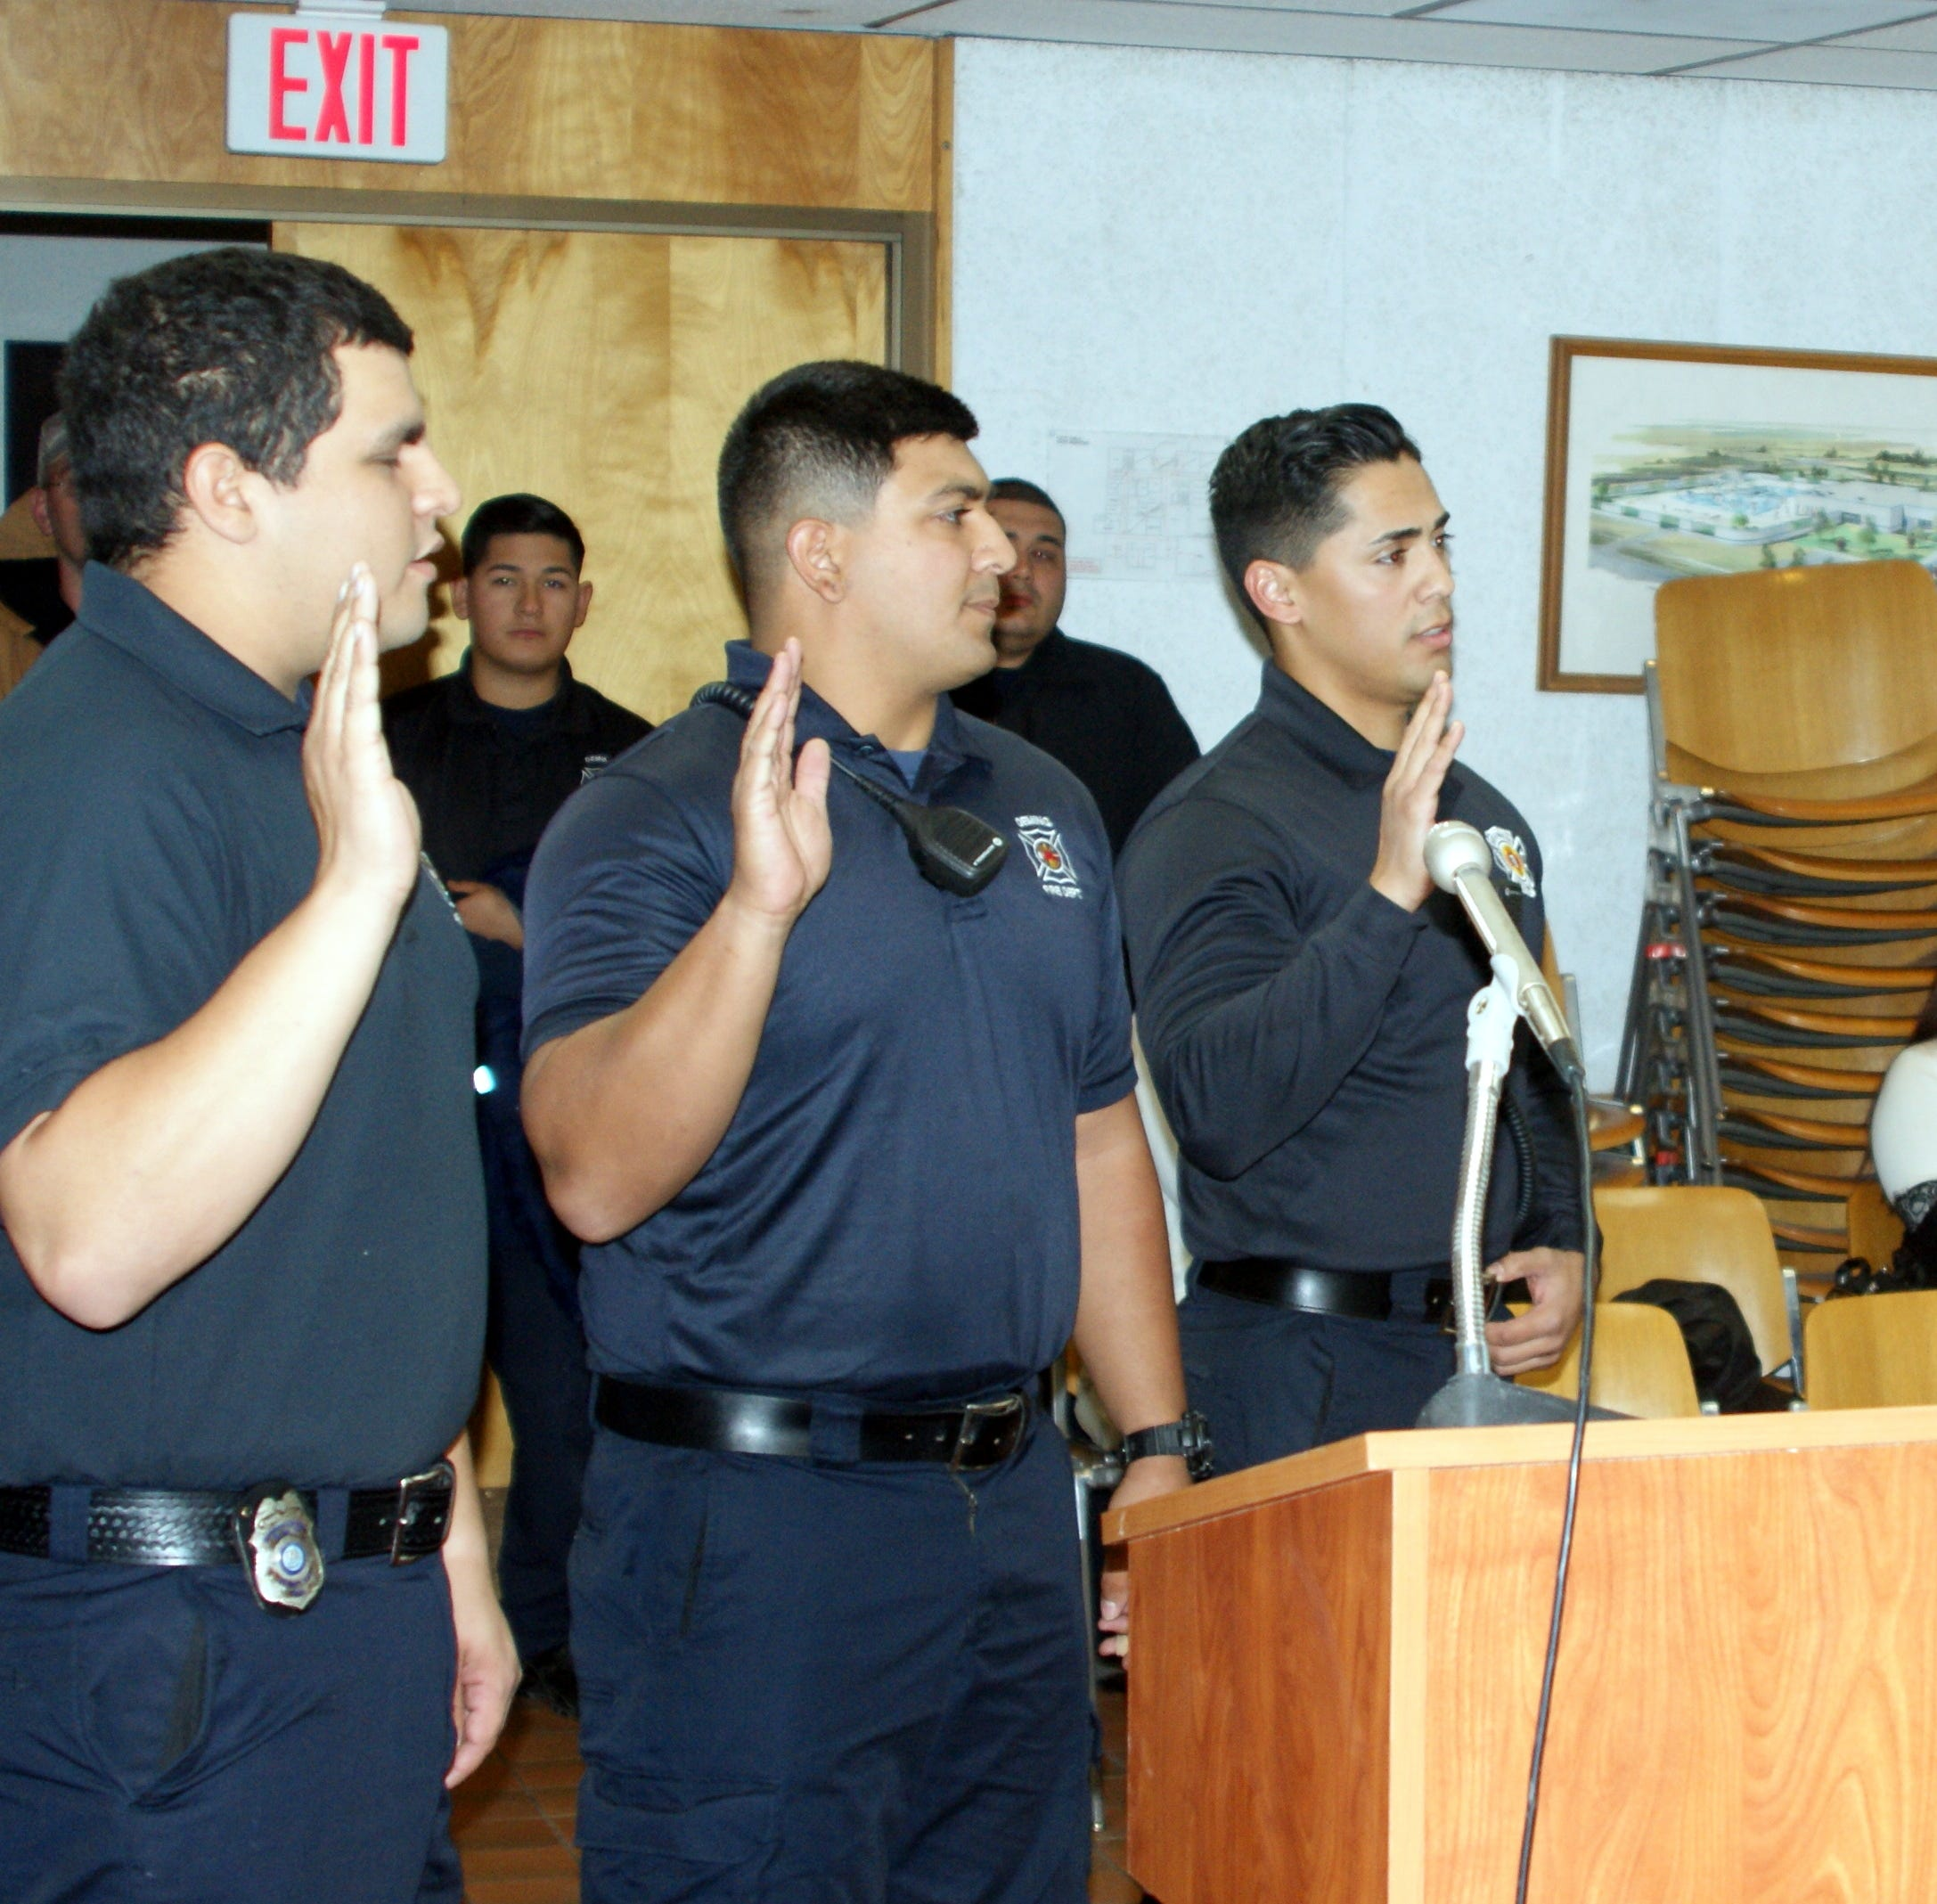 Three new Deming Firefighter/EMTs sworn-in at Deming City Council meeting